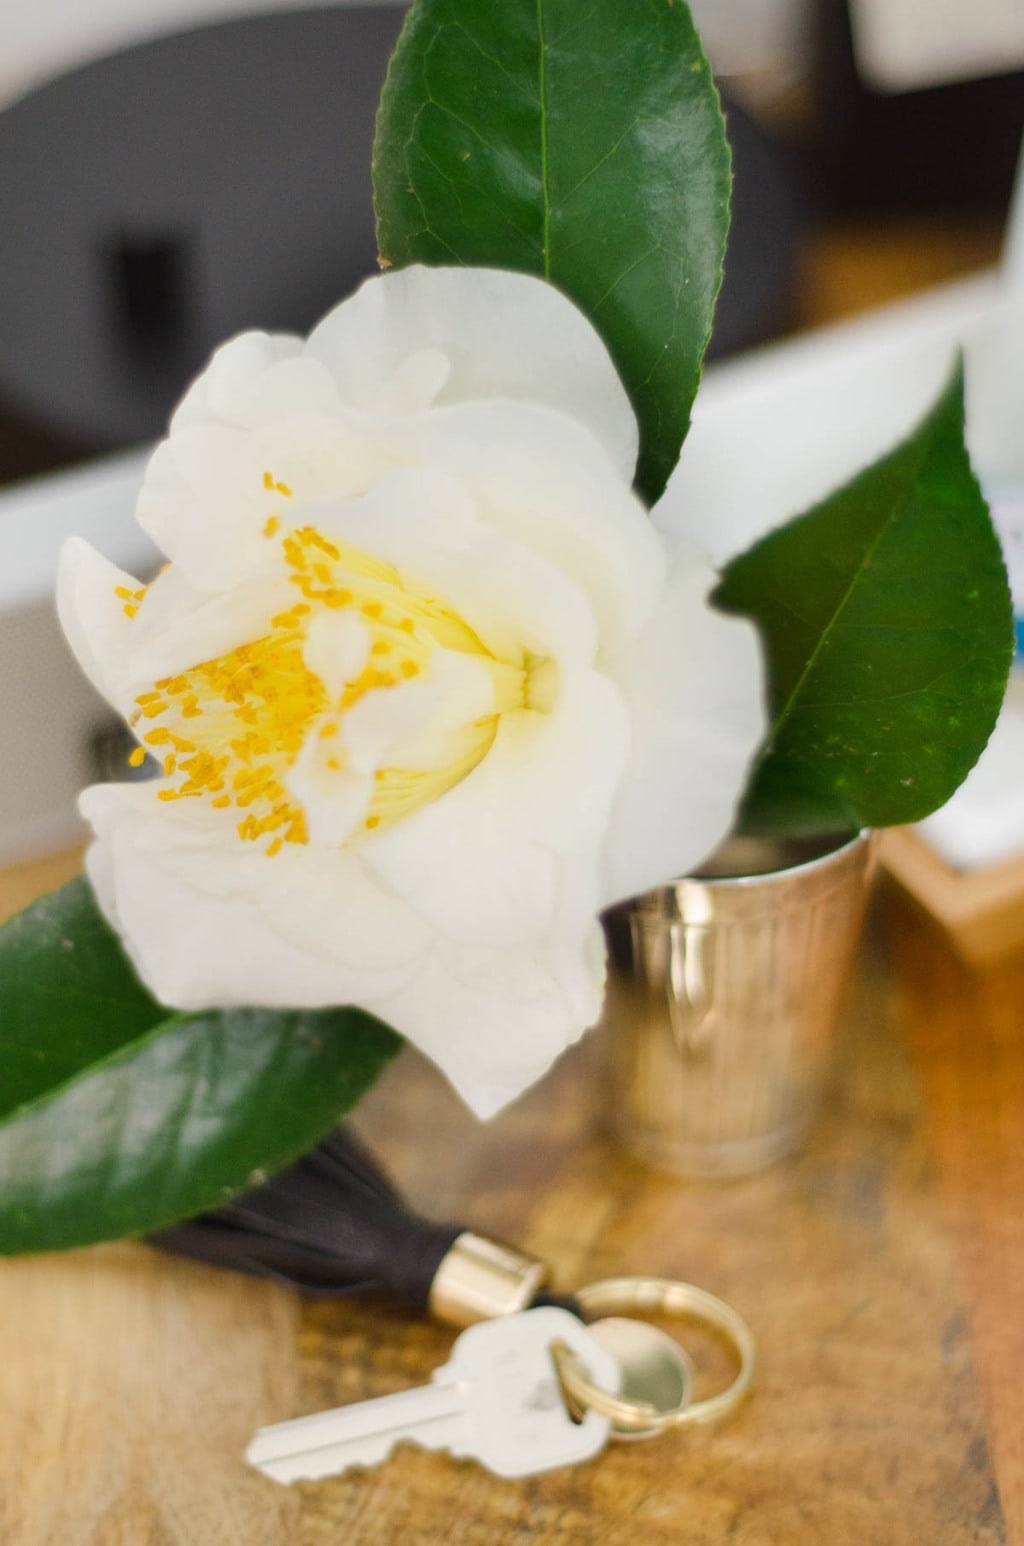 A winter camellia bloom on the nightstand.